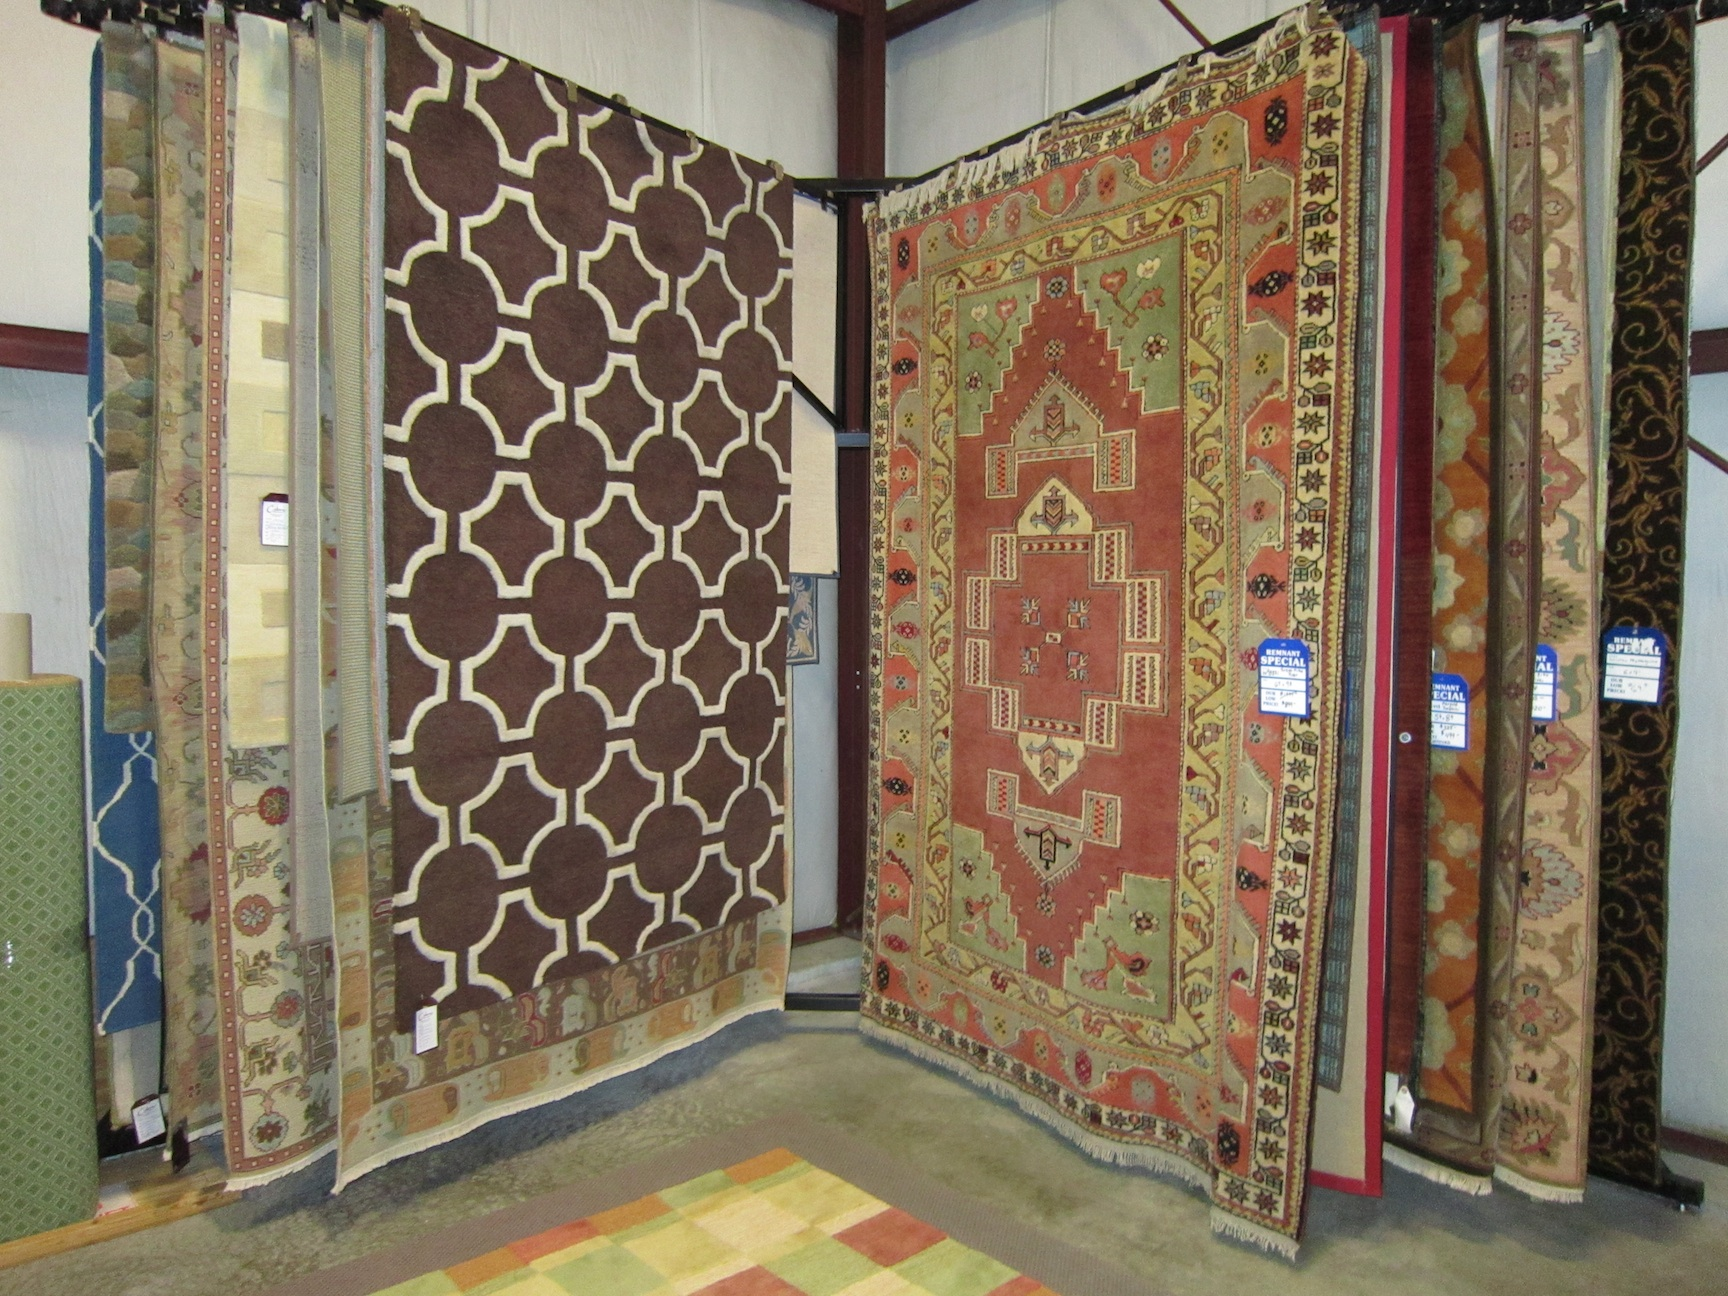 Get Instant Satisfaction At Our Remnant Room | Colony Rug Provider Of Carpet  Products, Services, And Installations